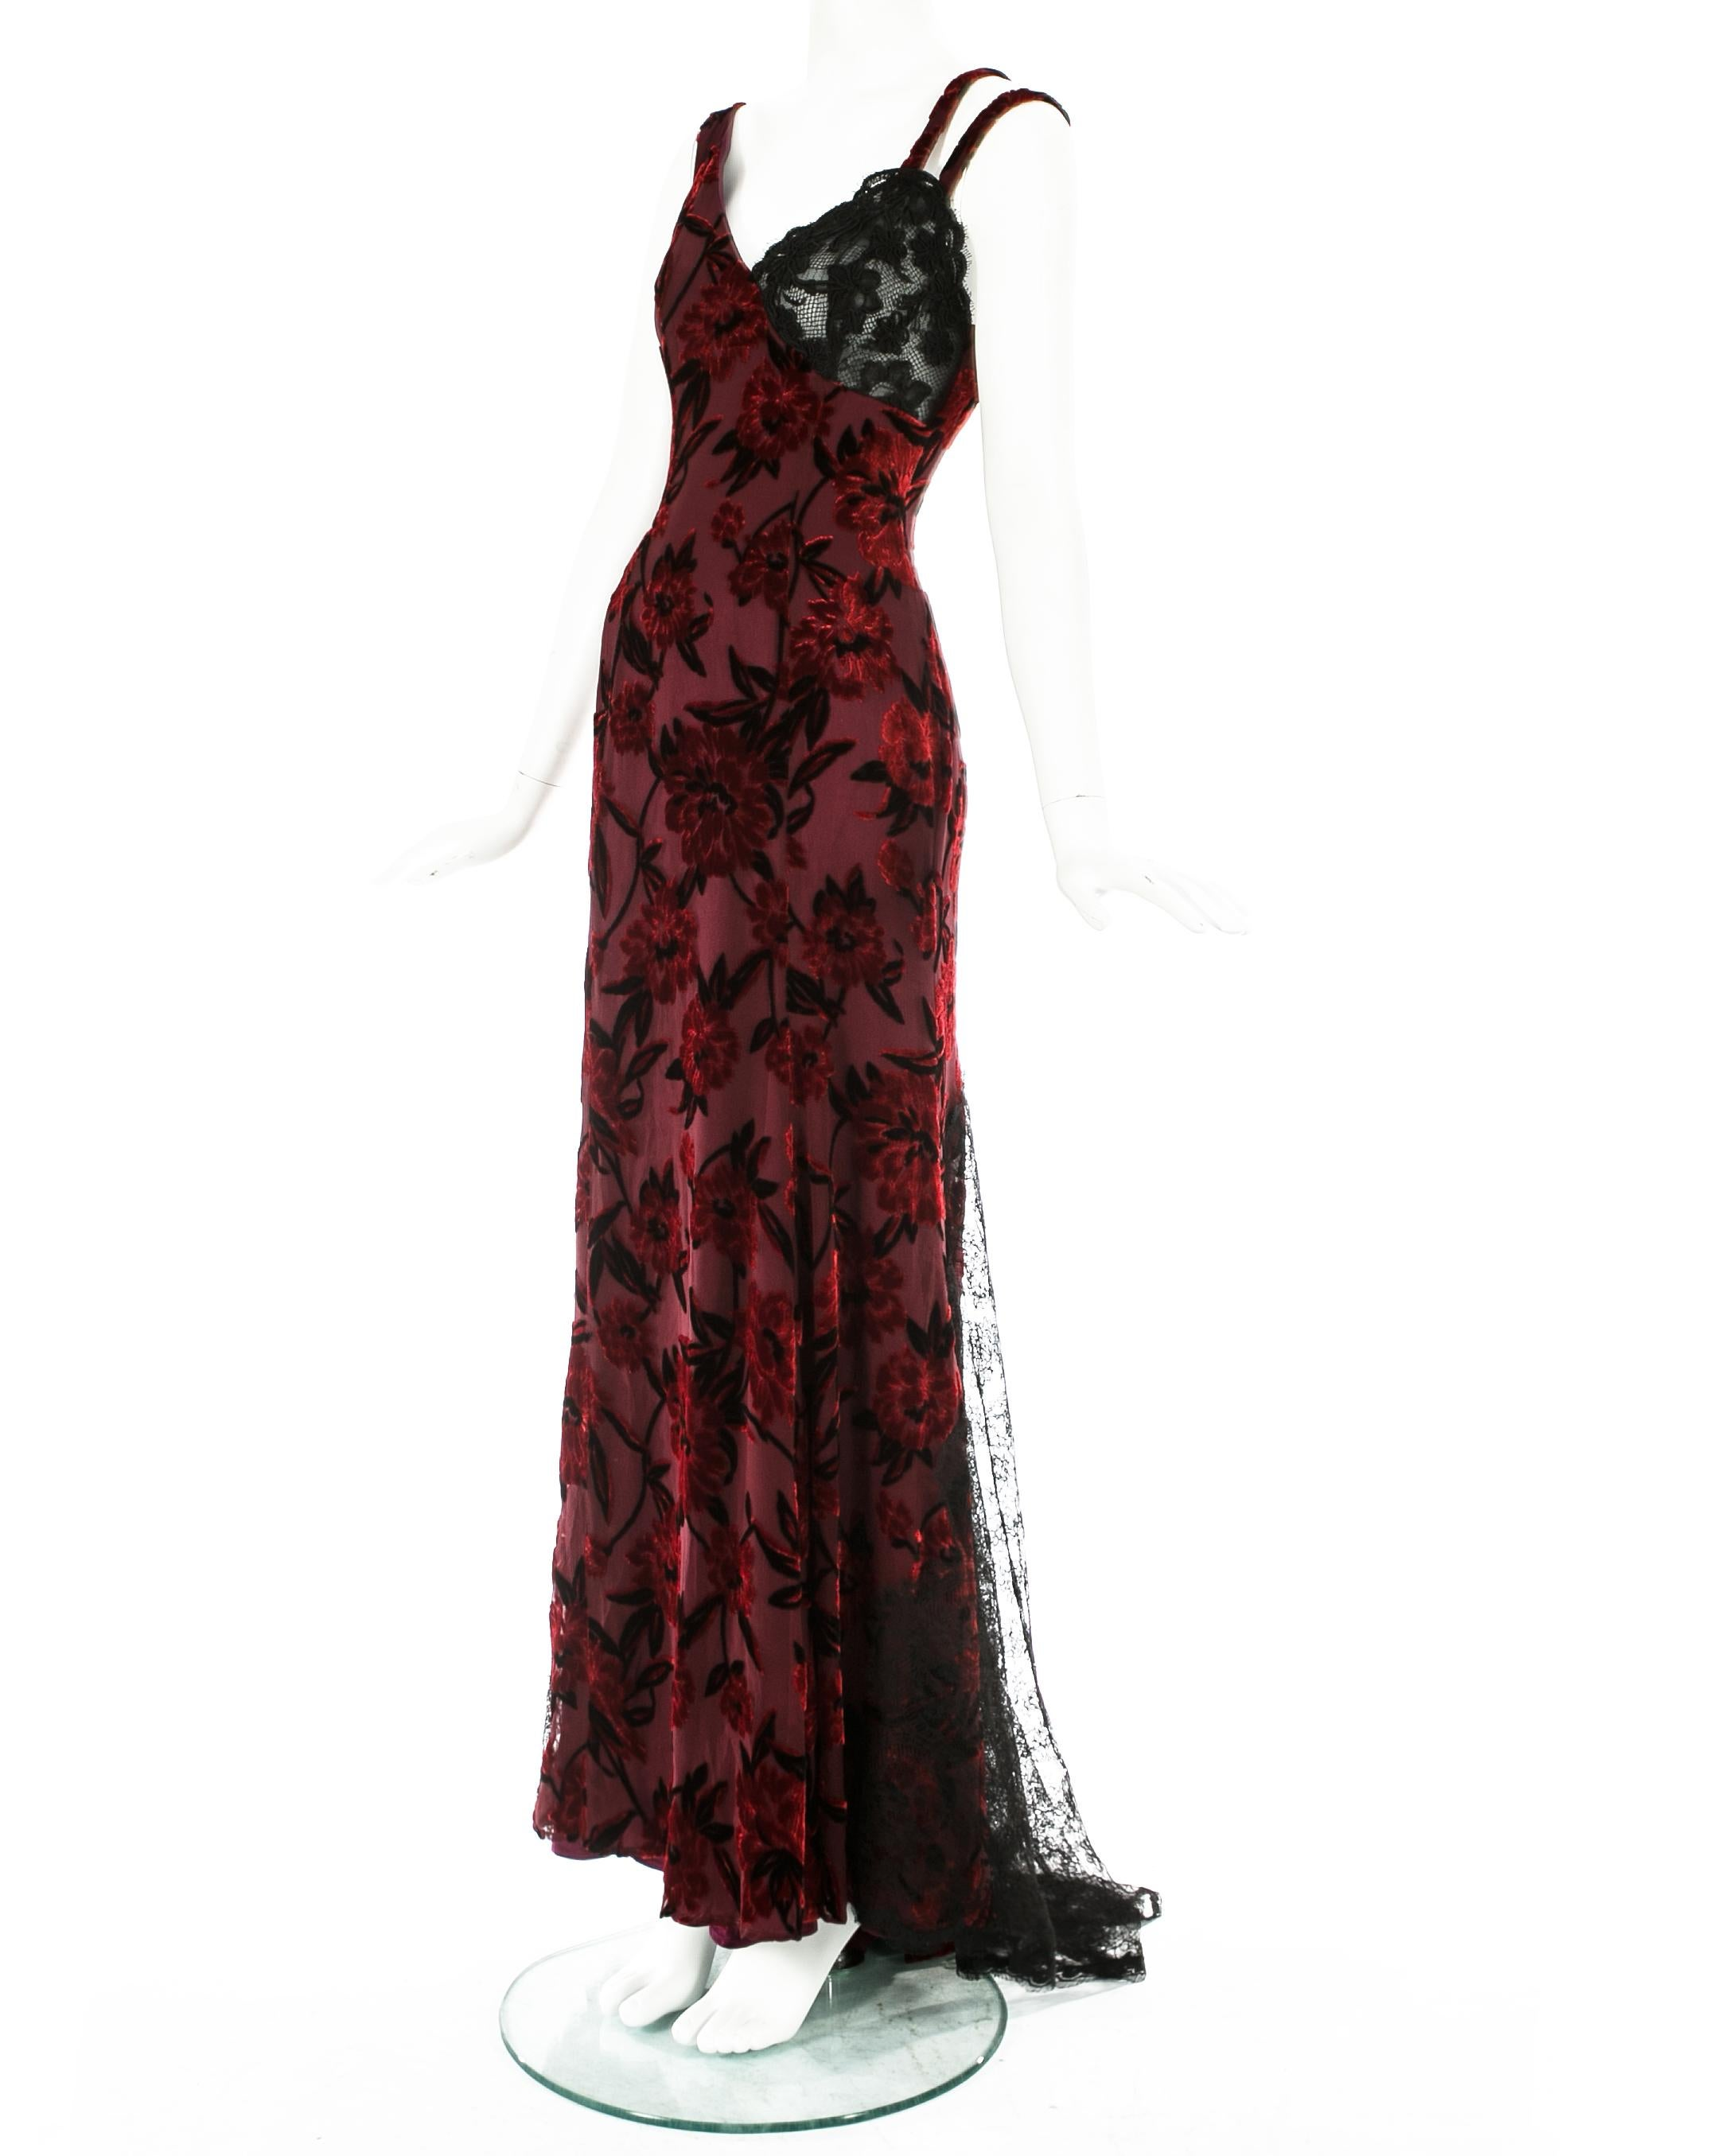 Red and Black Lace Dress,Black Silk Gown,Black Lace Cocktail Dress,Black Lace Evening Dresses,Black Silk Gown,Red and Black Dress,red silk dress,red and black dress,red and black dress,